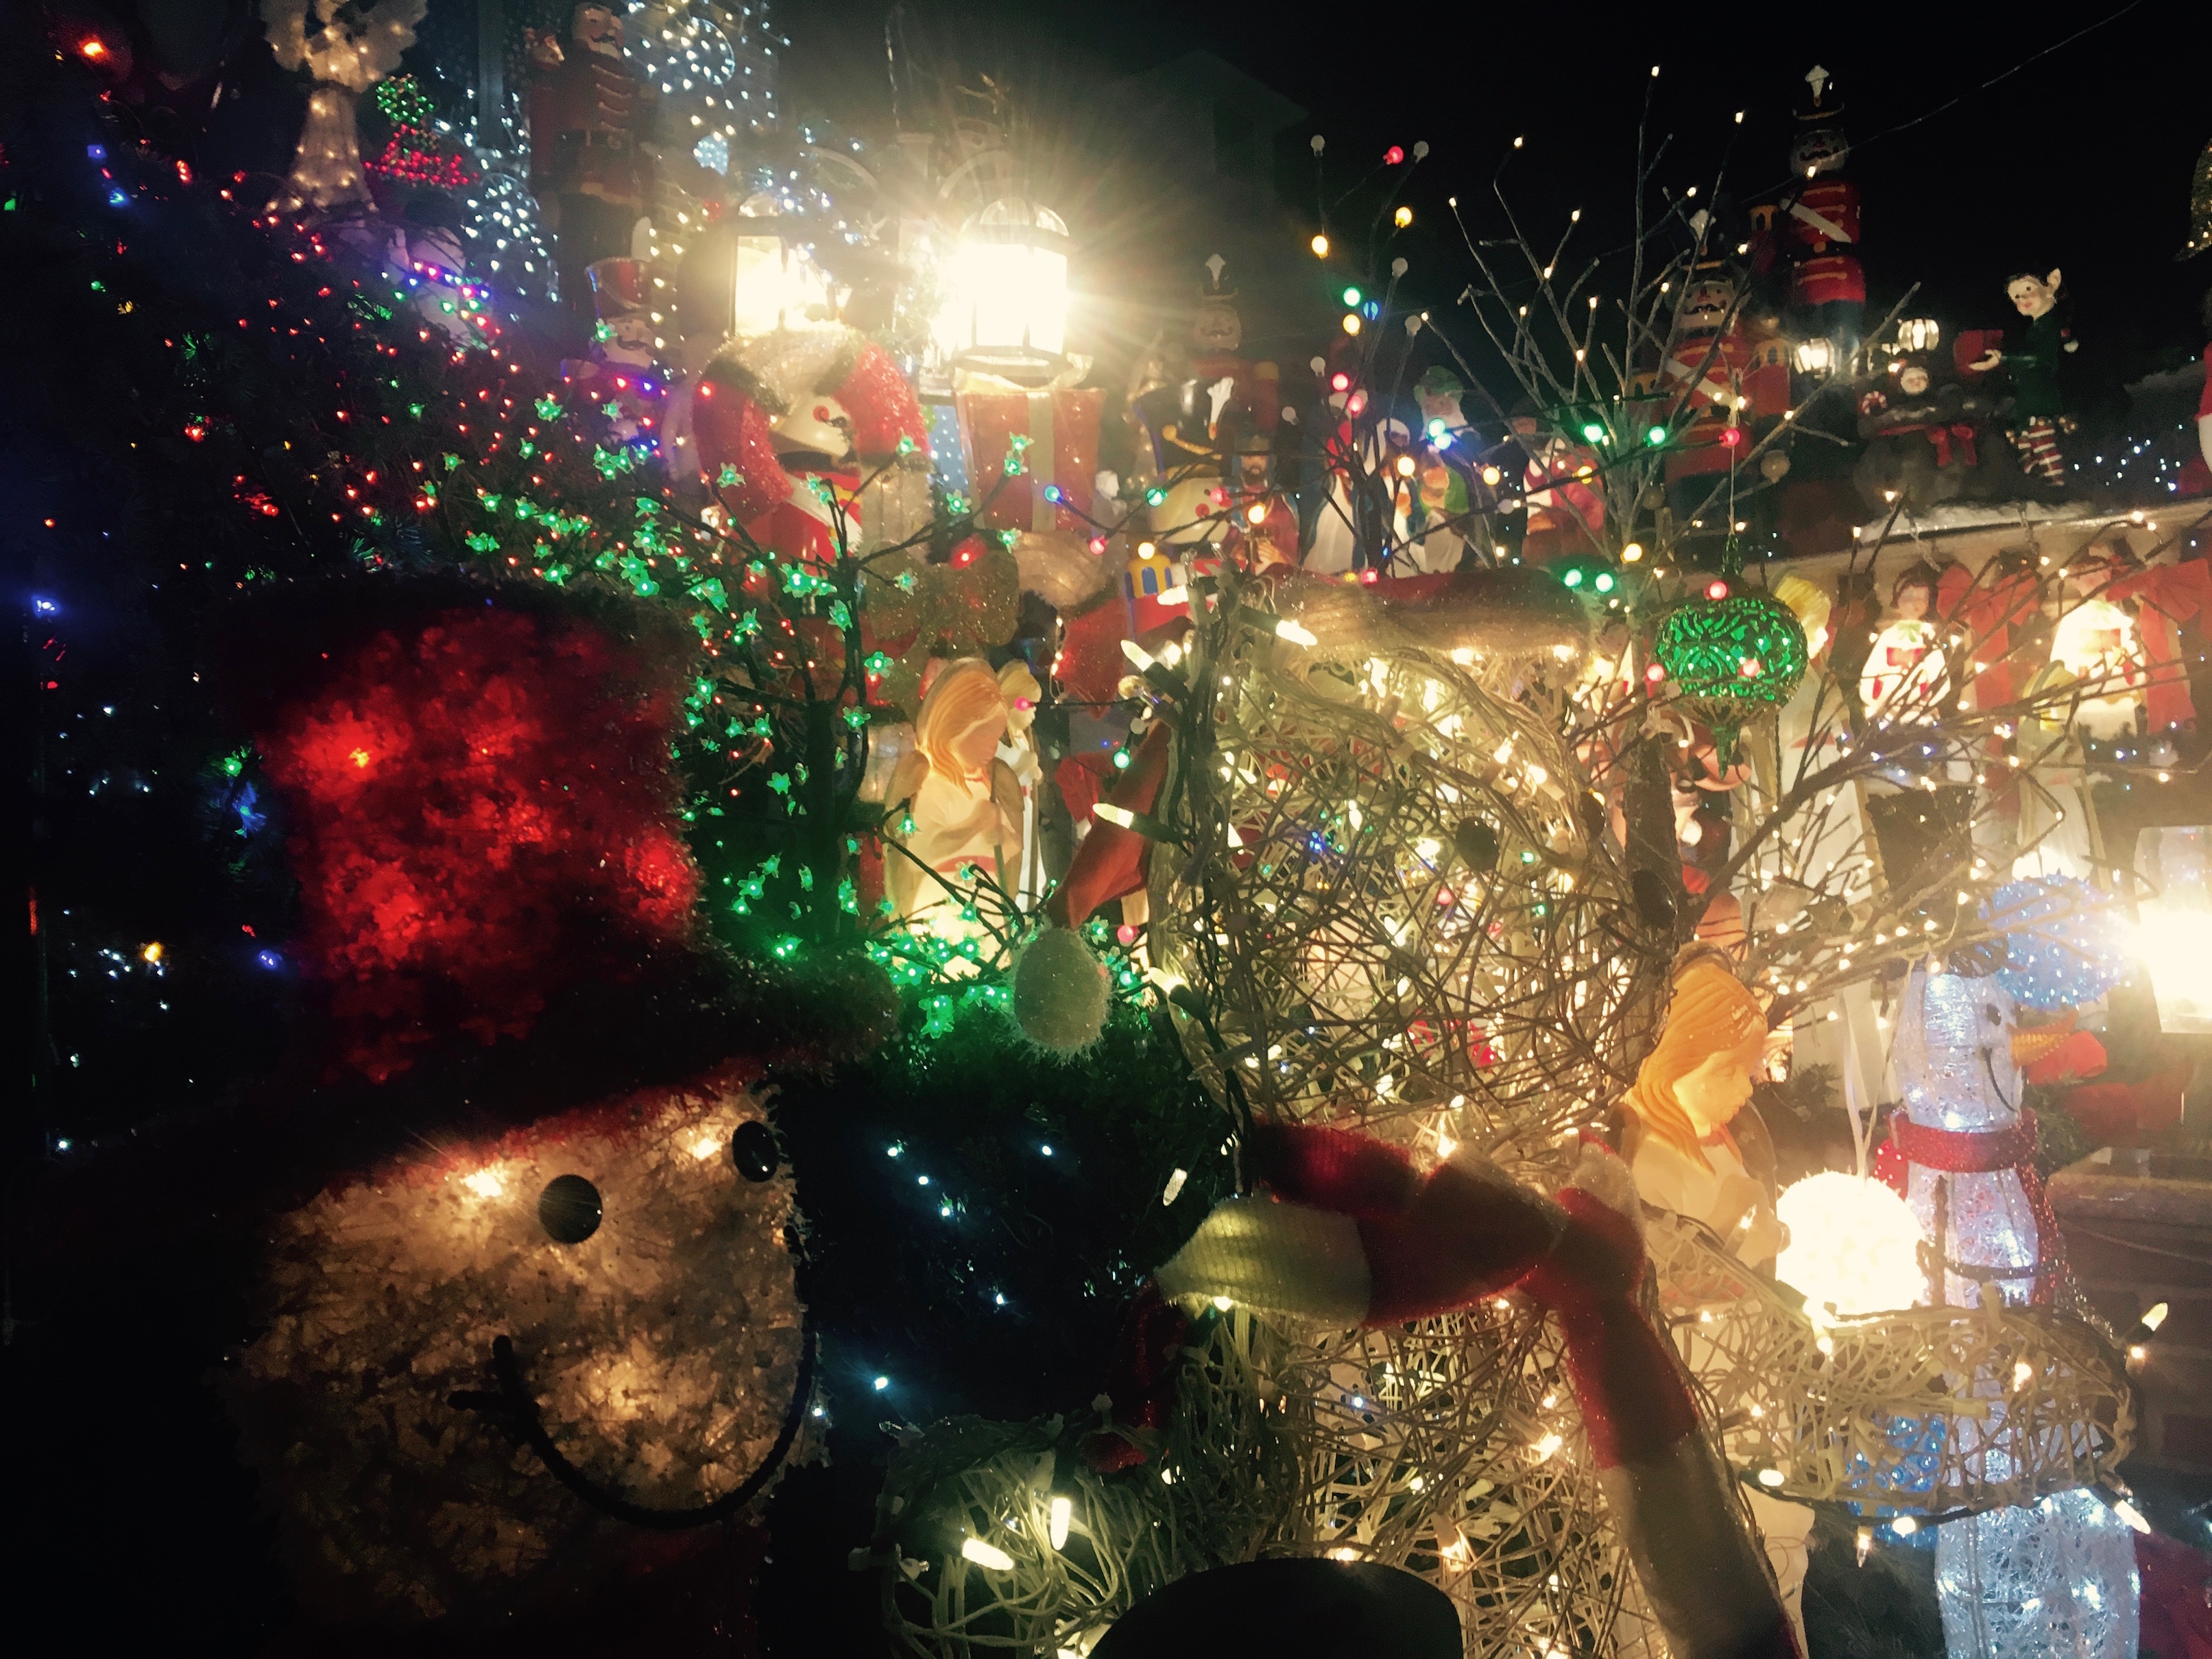 festively bonkers welcome to the dyker heights christmas light show the bowery boys new york city history